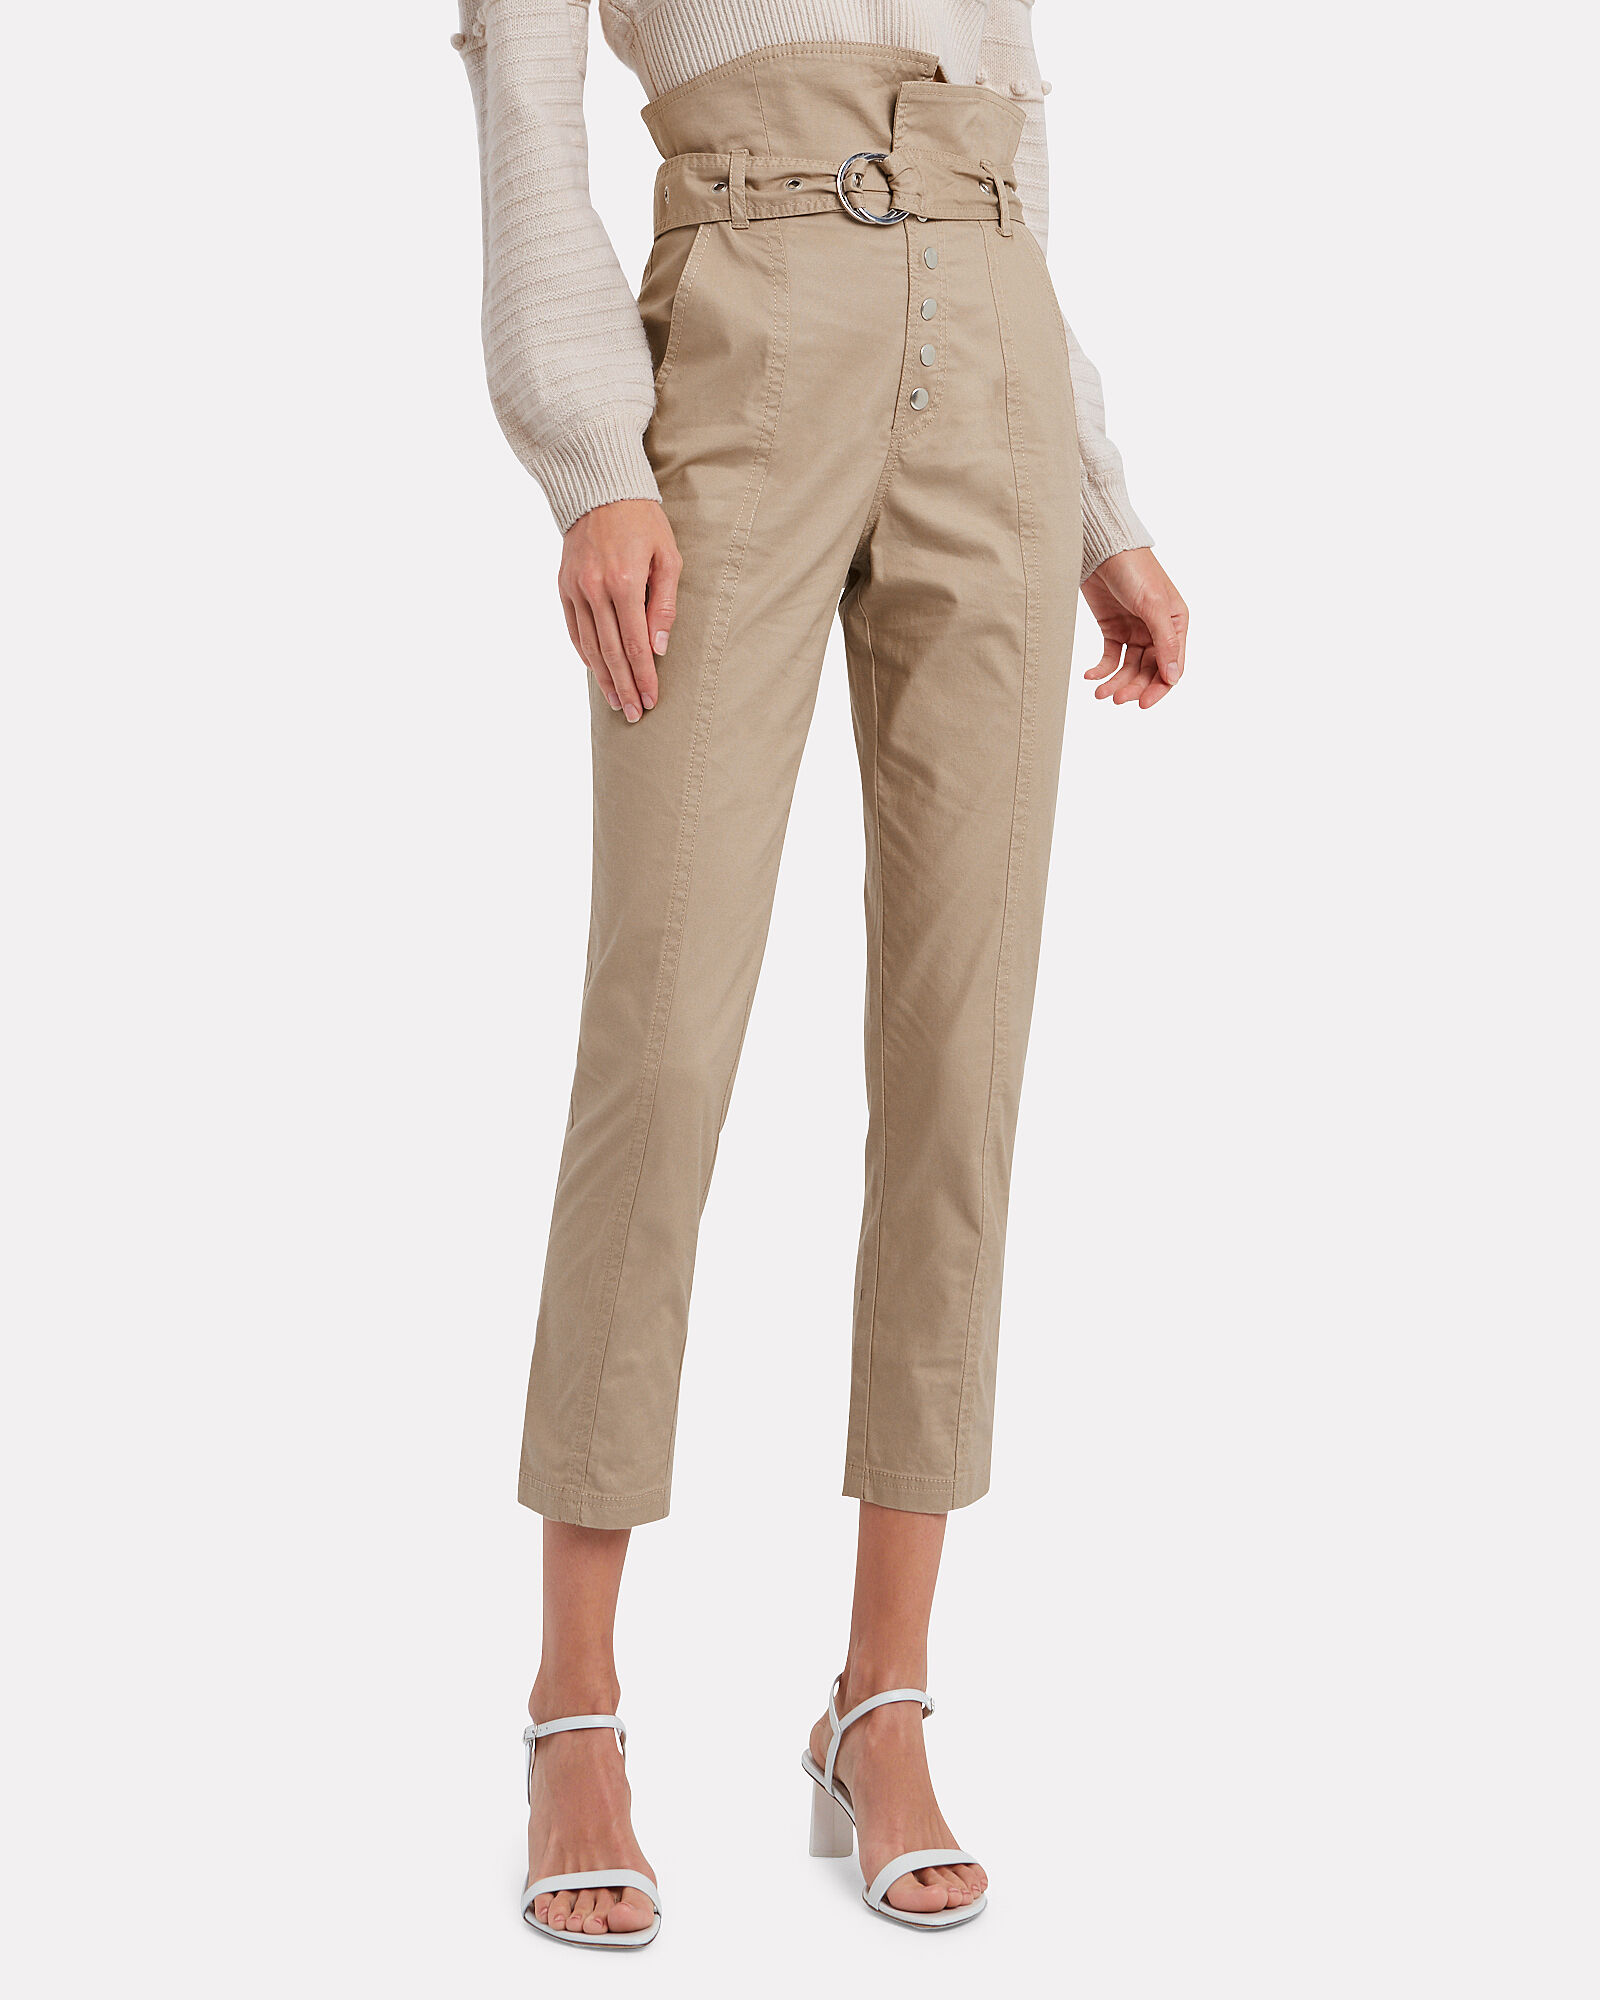 Gia Belted Cropped Pants, SAND DUNE, hi-res